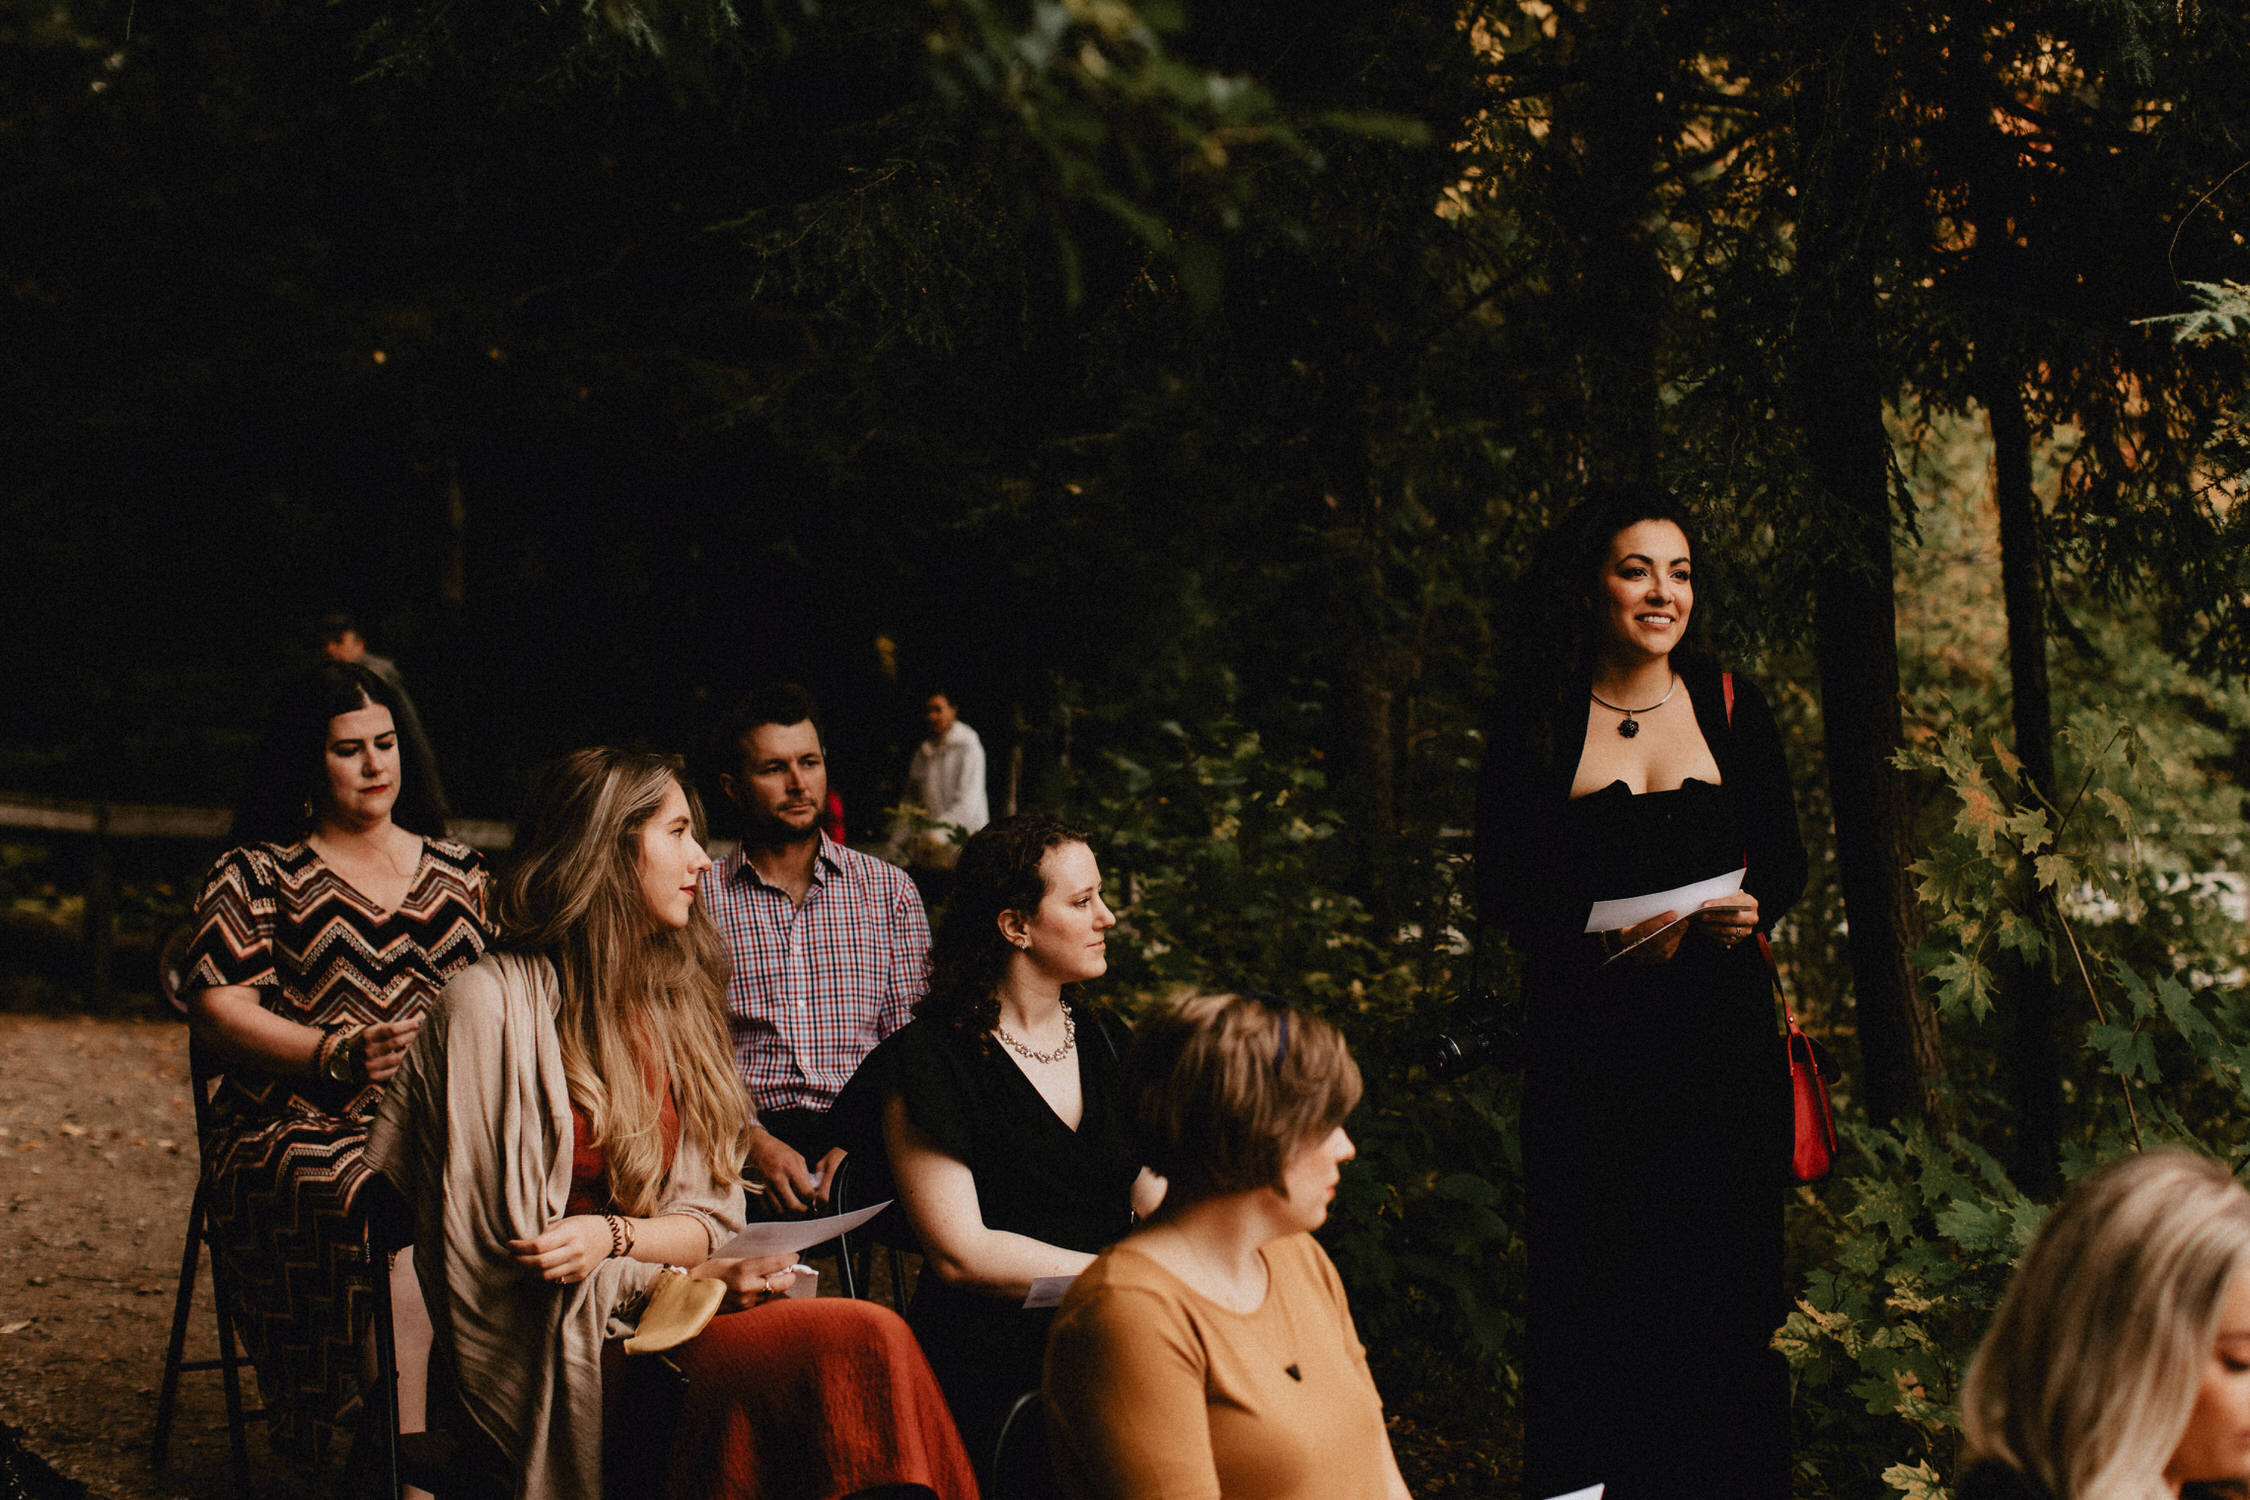 Guests read poetry during forest wedding ceremony - Huron Natural Area Micro Wedding Kitchener, Ontario